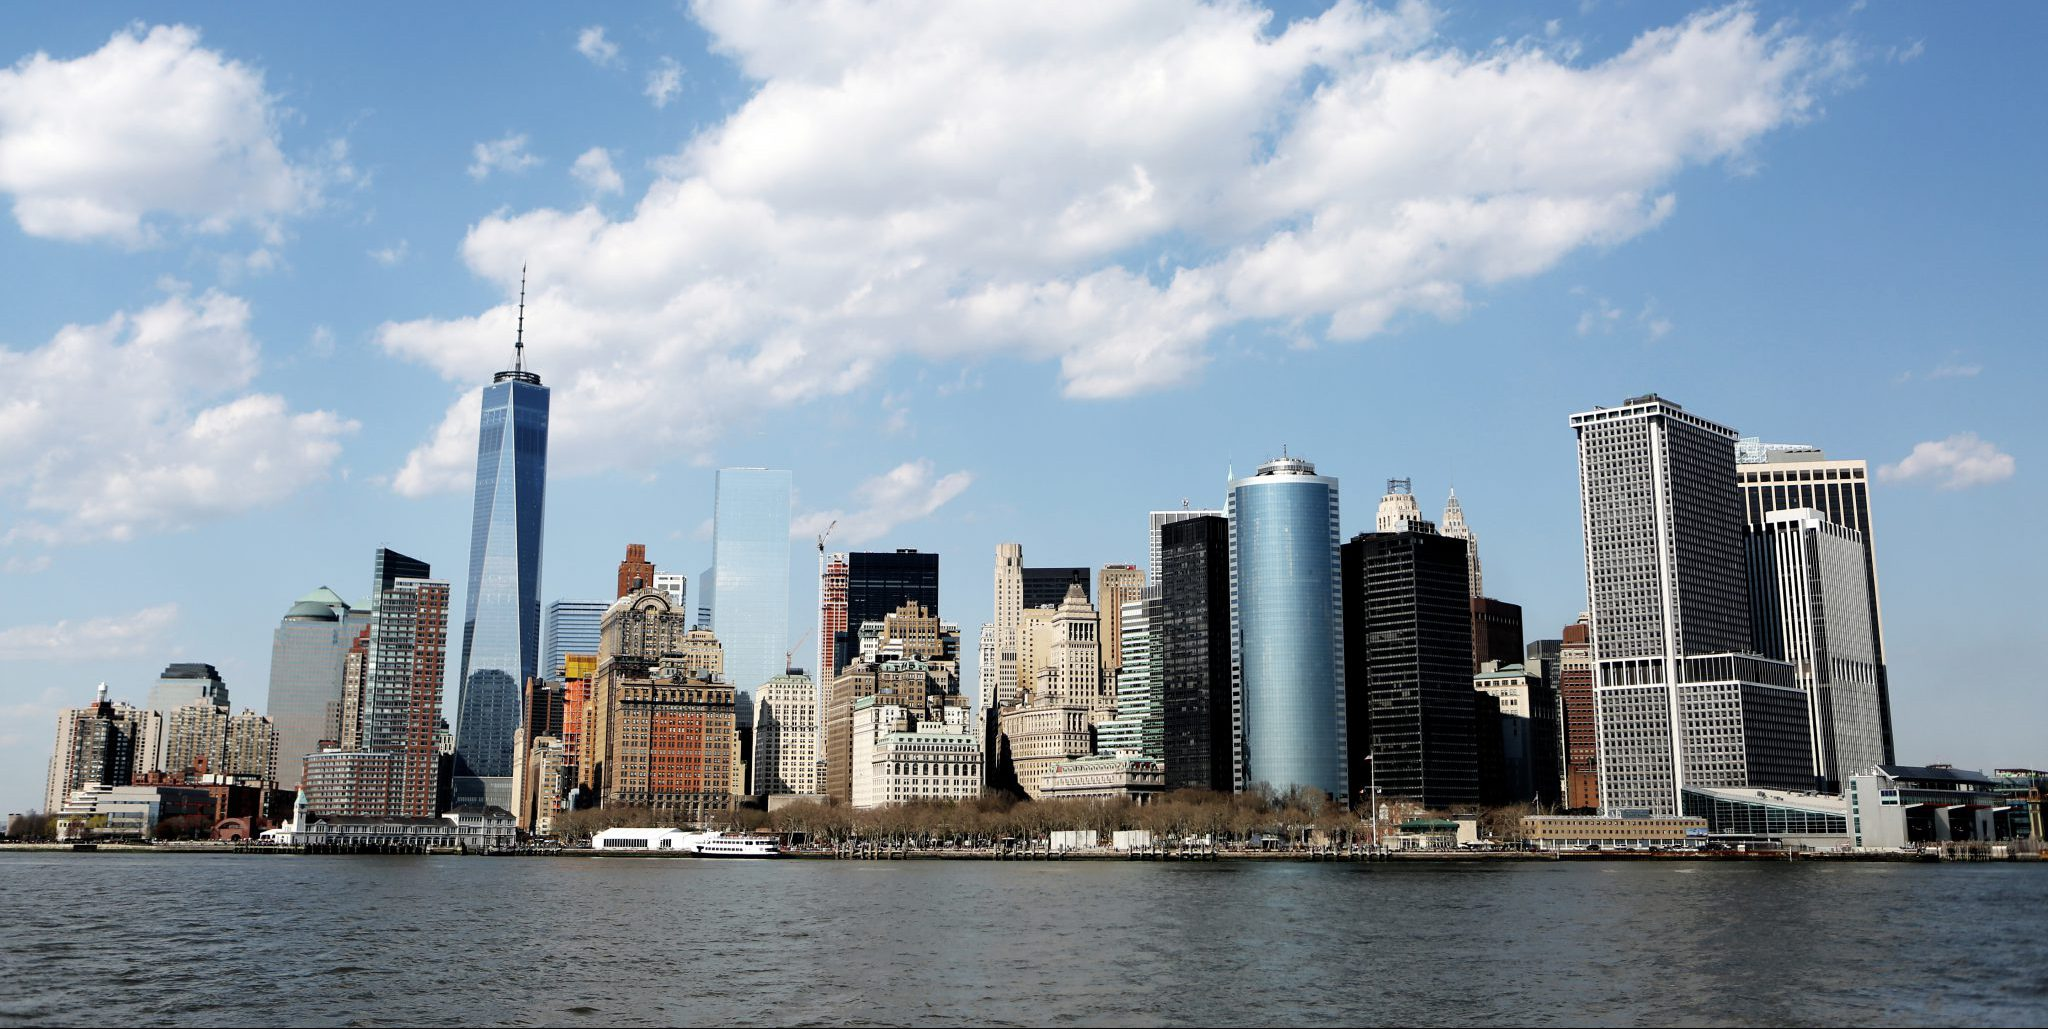 Does New York's Adoption of the UBE Do More Harm than Good?